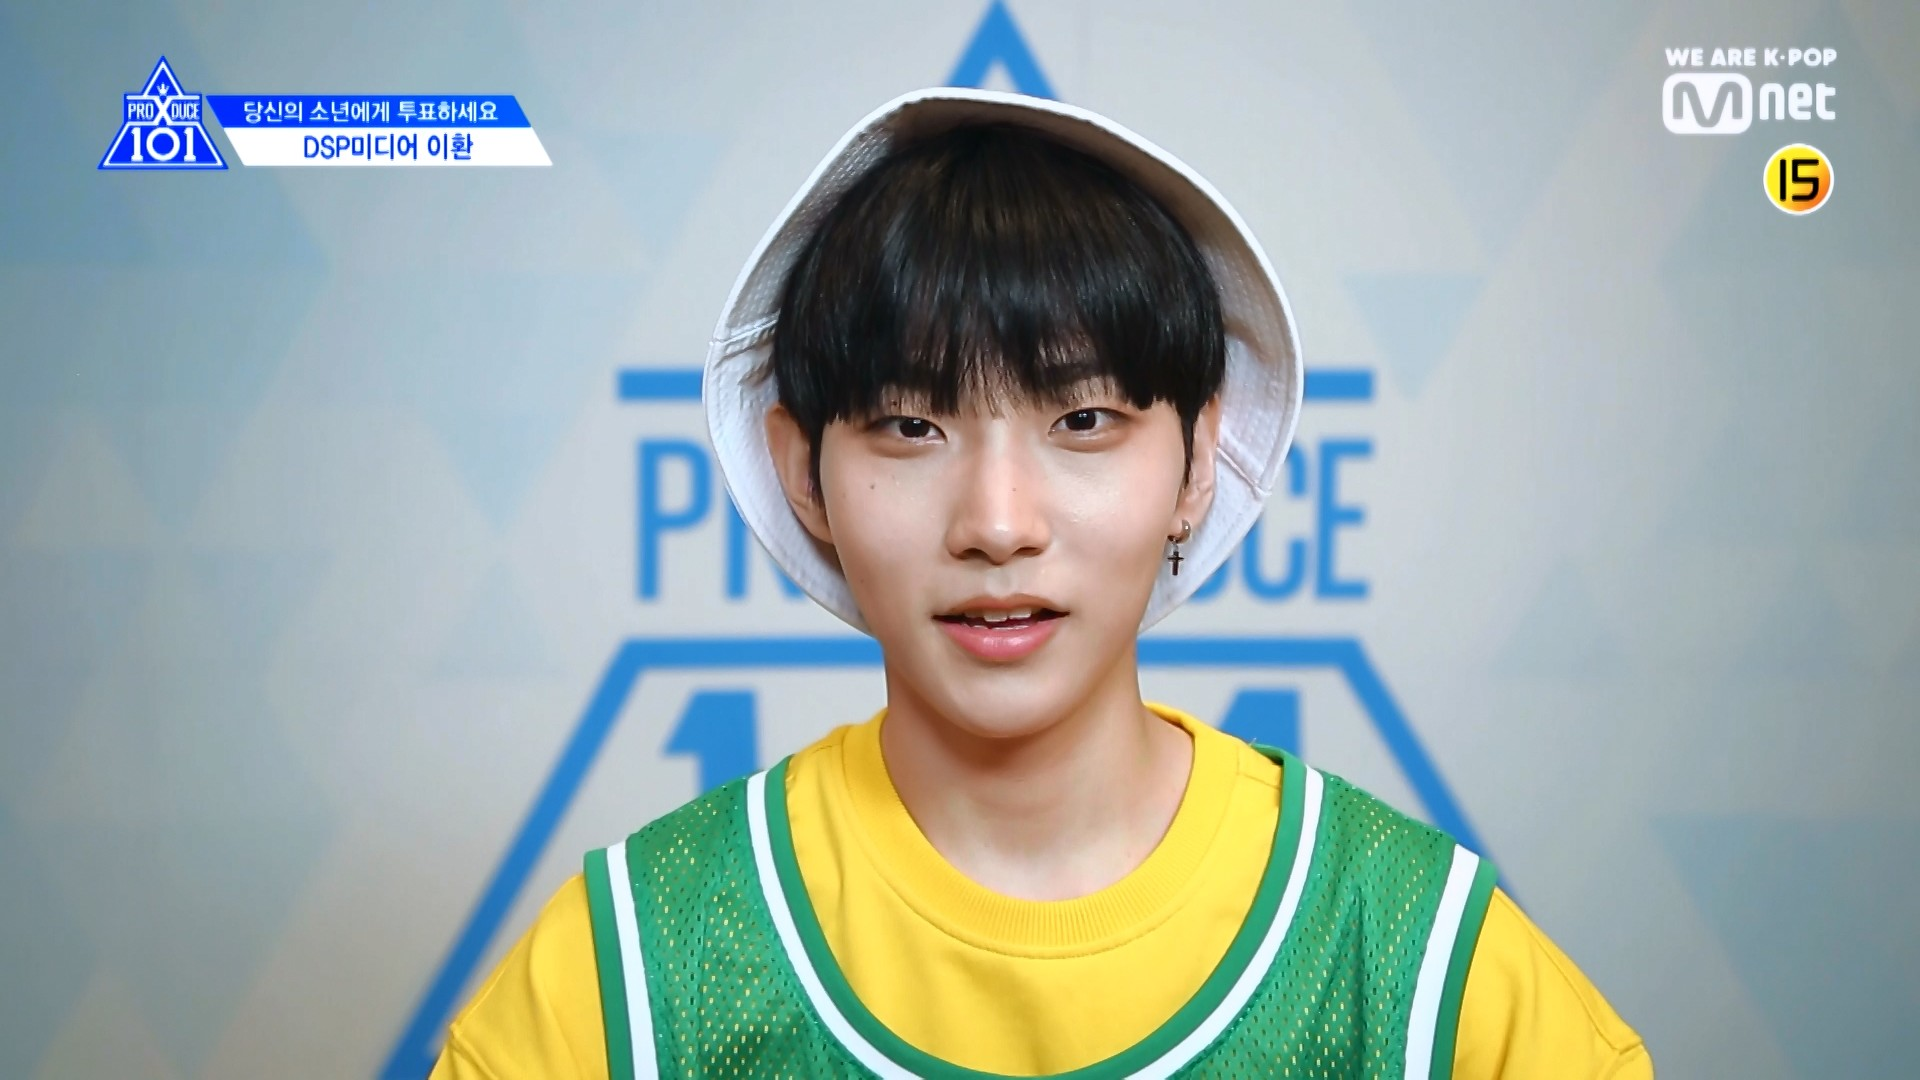 [PRODUCE X 101] EYE CONTACT CHALLENGE l LEE HWAN(DSP Media)